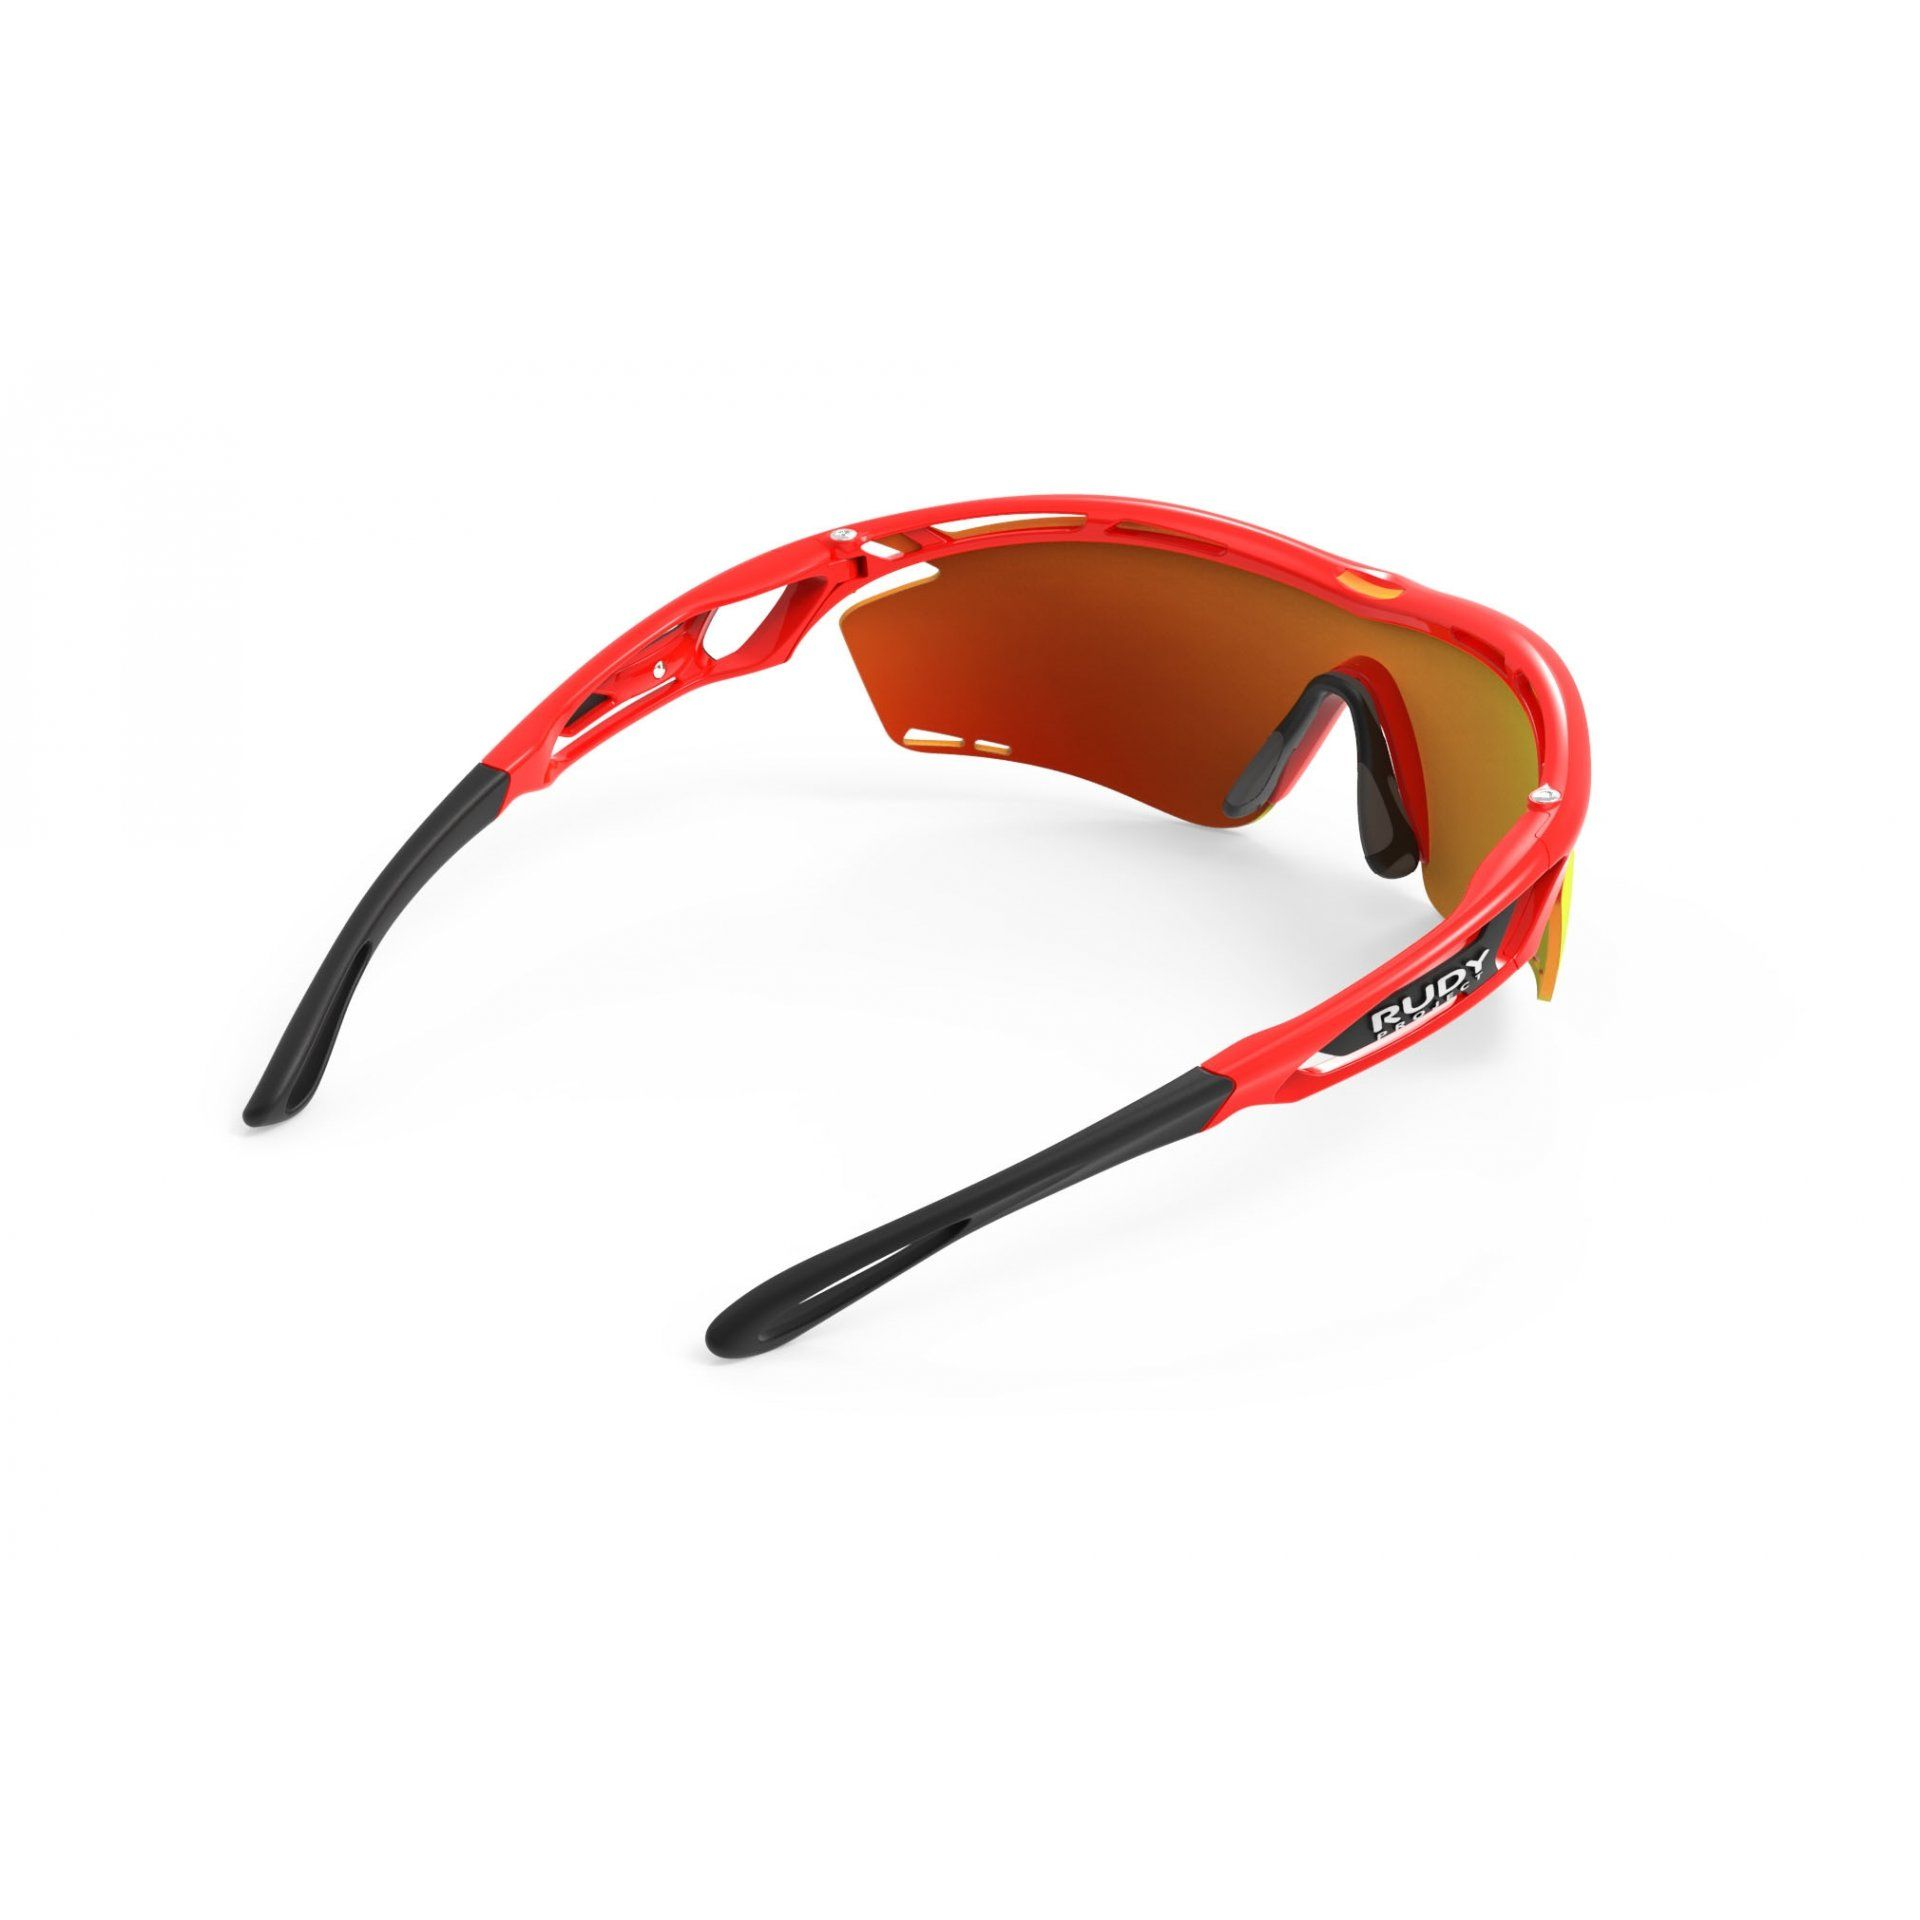 OKULARY RUDY PROJECT TRALYX RED FLUO+MULTILASER ORANGE 5